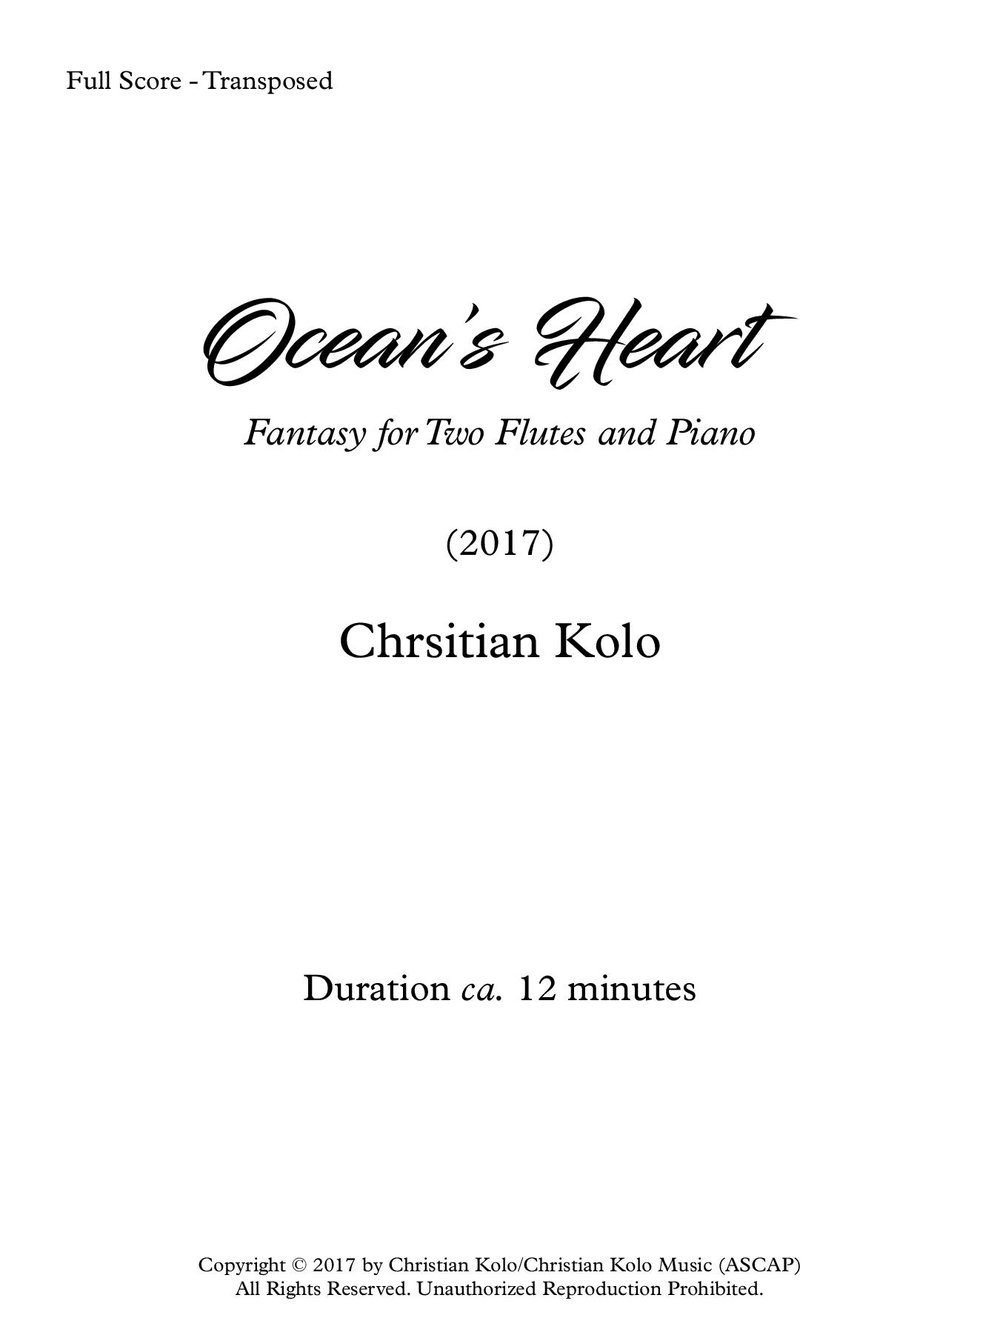 Ocean's Heart (Works Cover).jpg